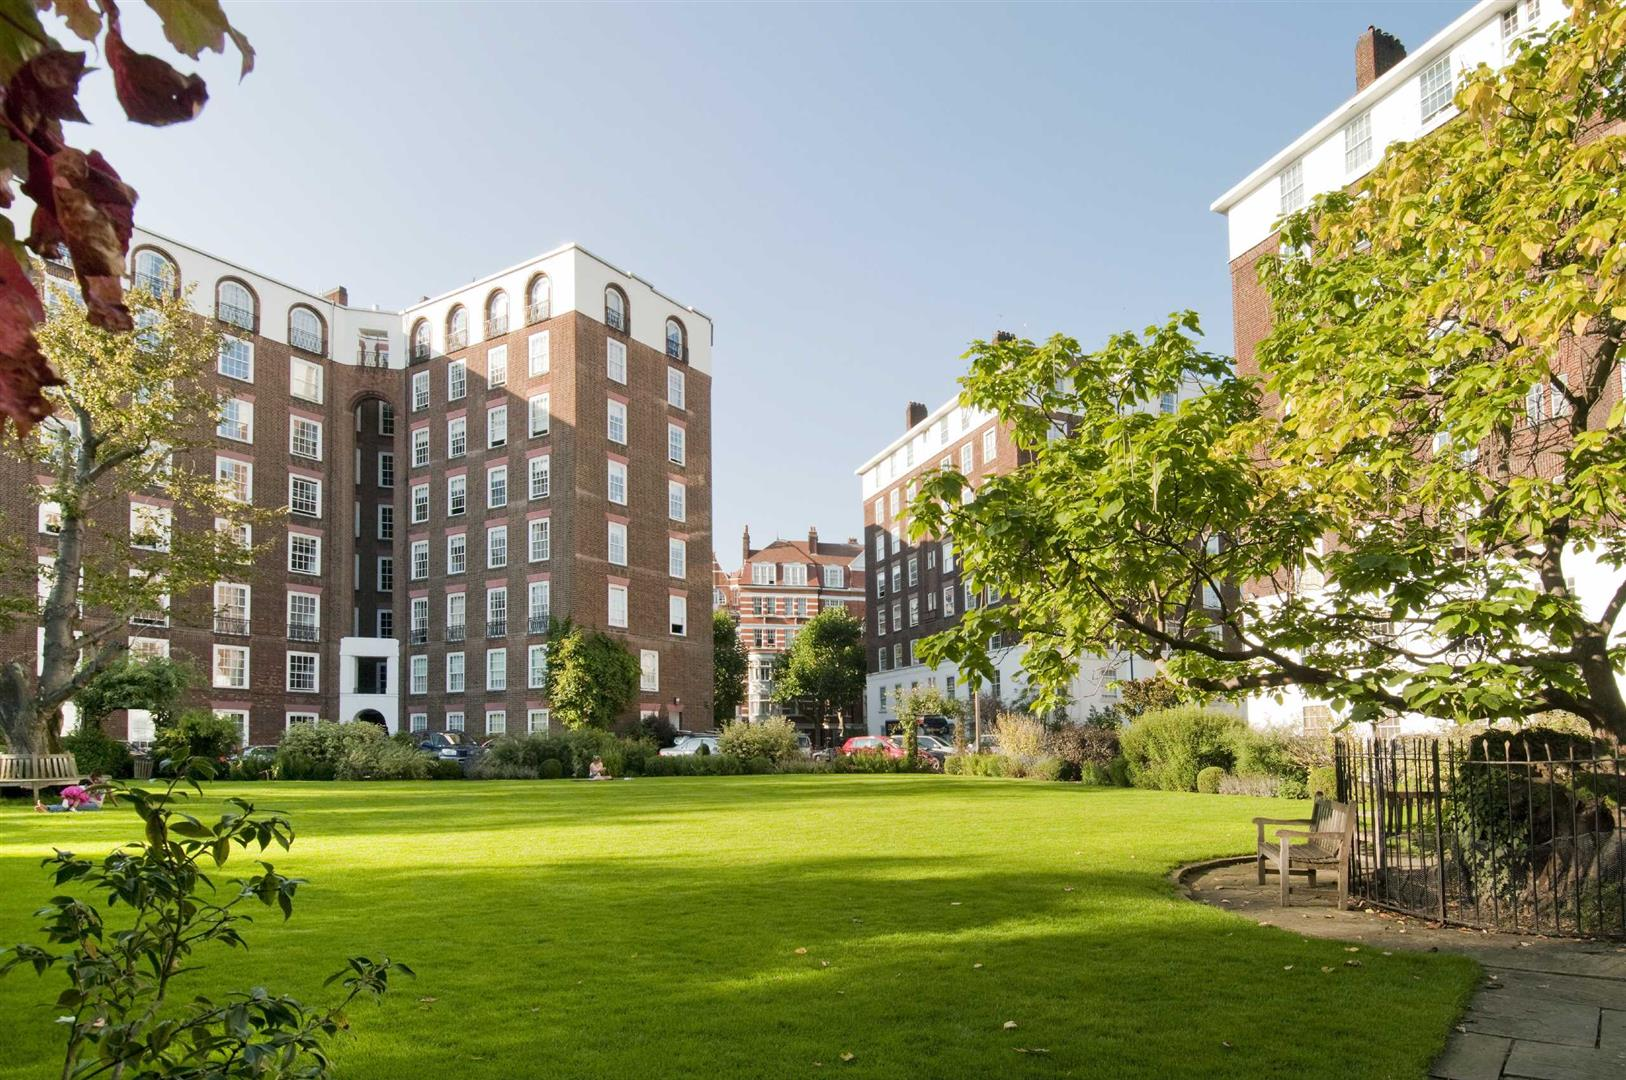 3 Bedrooms Flat for sale in North End House, Fitzjames Avenue, West Kensington, W14